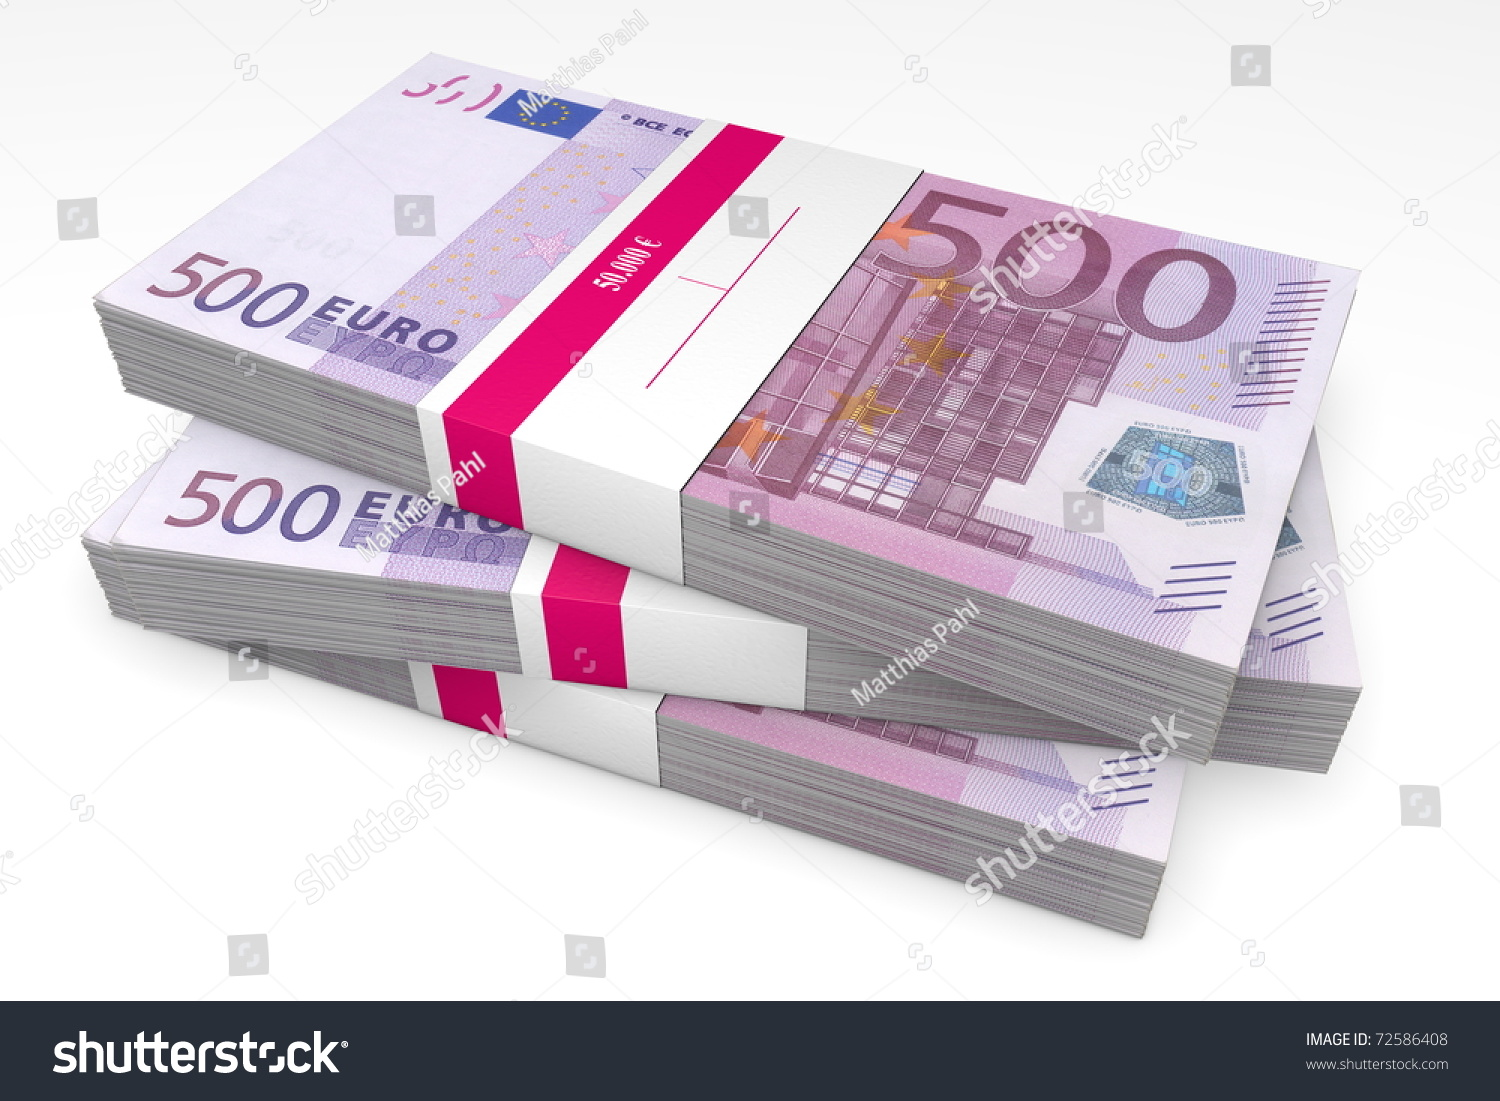 three packet 500 euro notes bank stock illustration 72586408 shutterstock. Black Bedroom Furniture Sets. Home Design Ideas